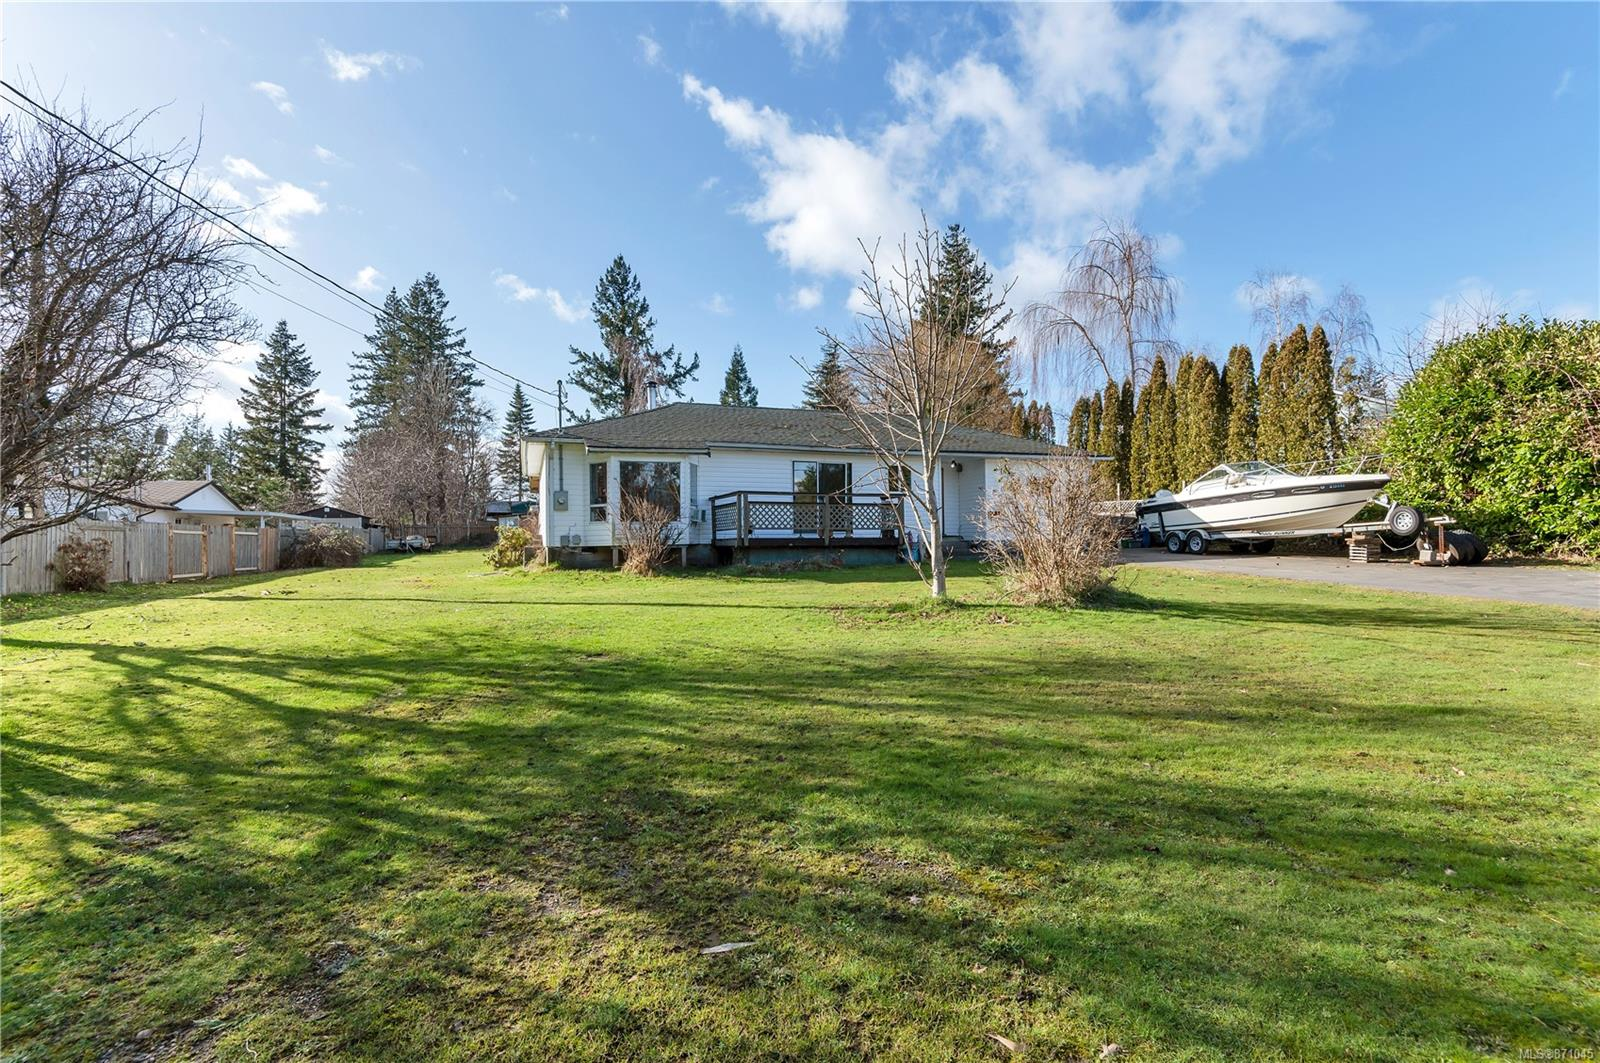 4056 Barclay Road, Campbell River North, Campbell River photo 0